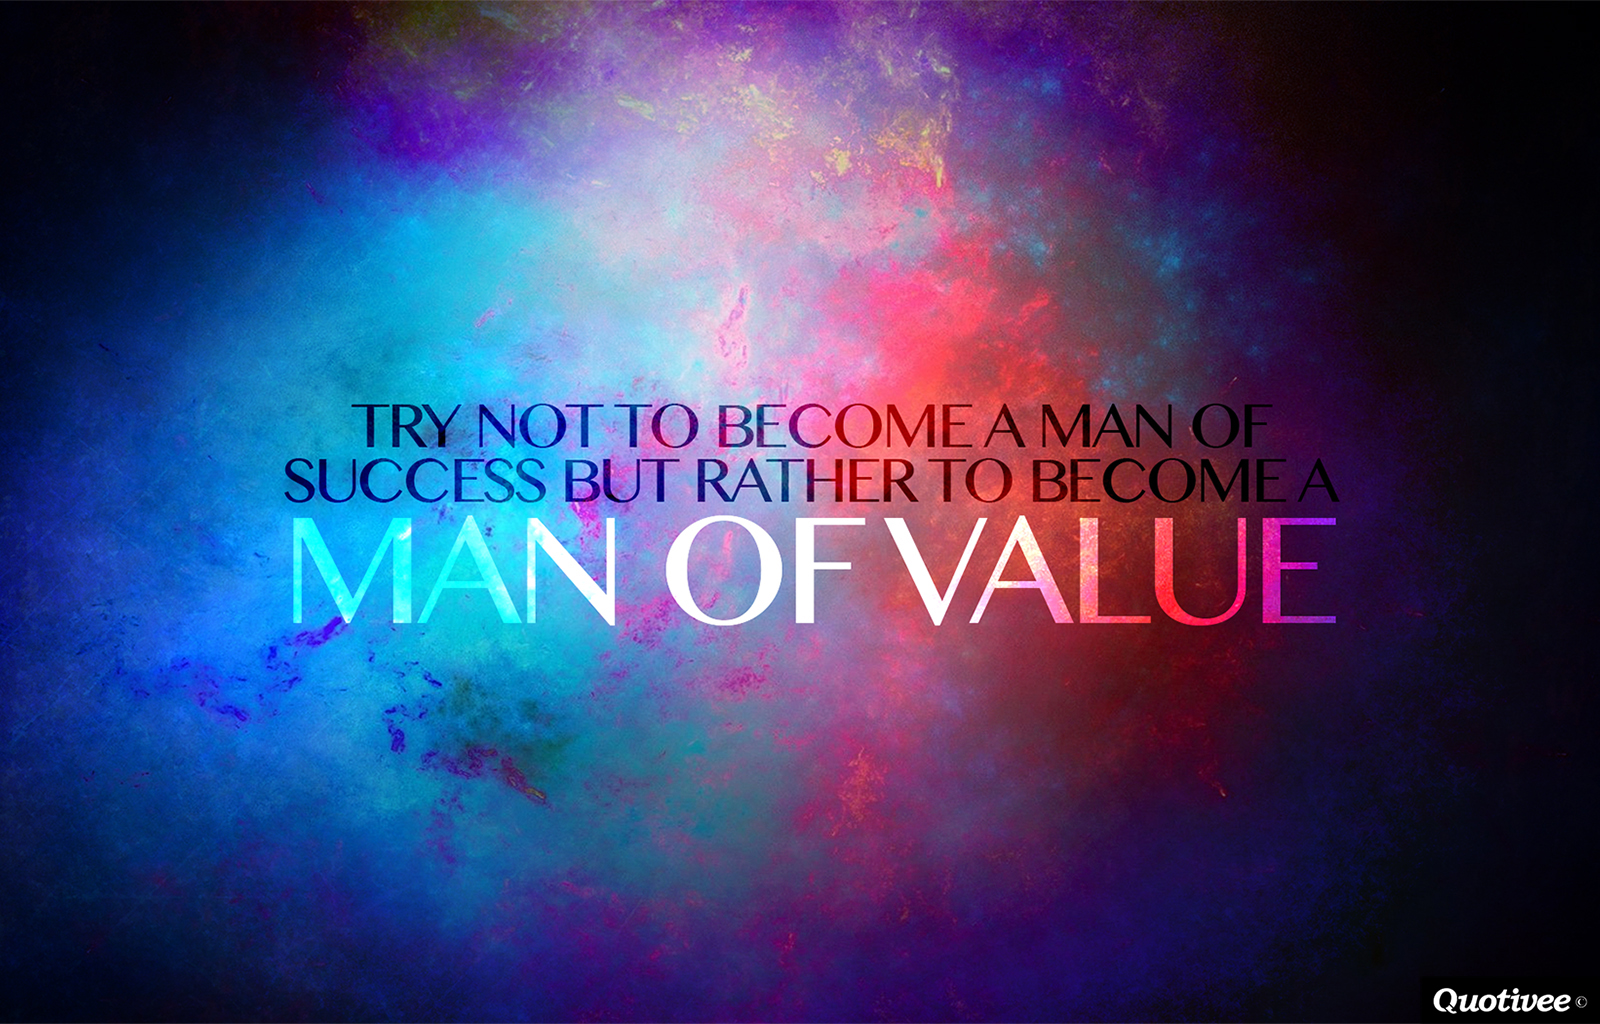 Business Inspirational Quotes Wallpaper Download Man Of Value Inspirational Quotes Quotivee